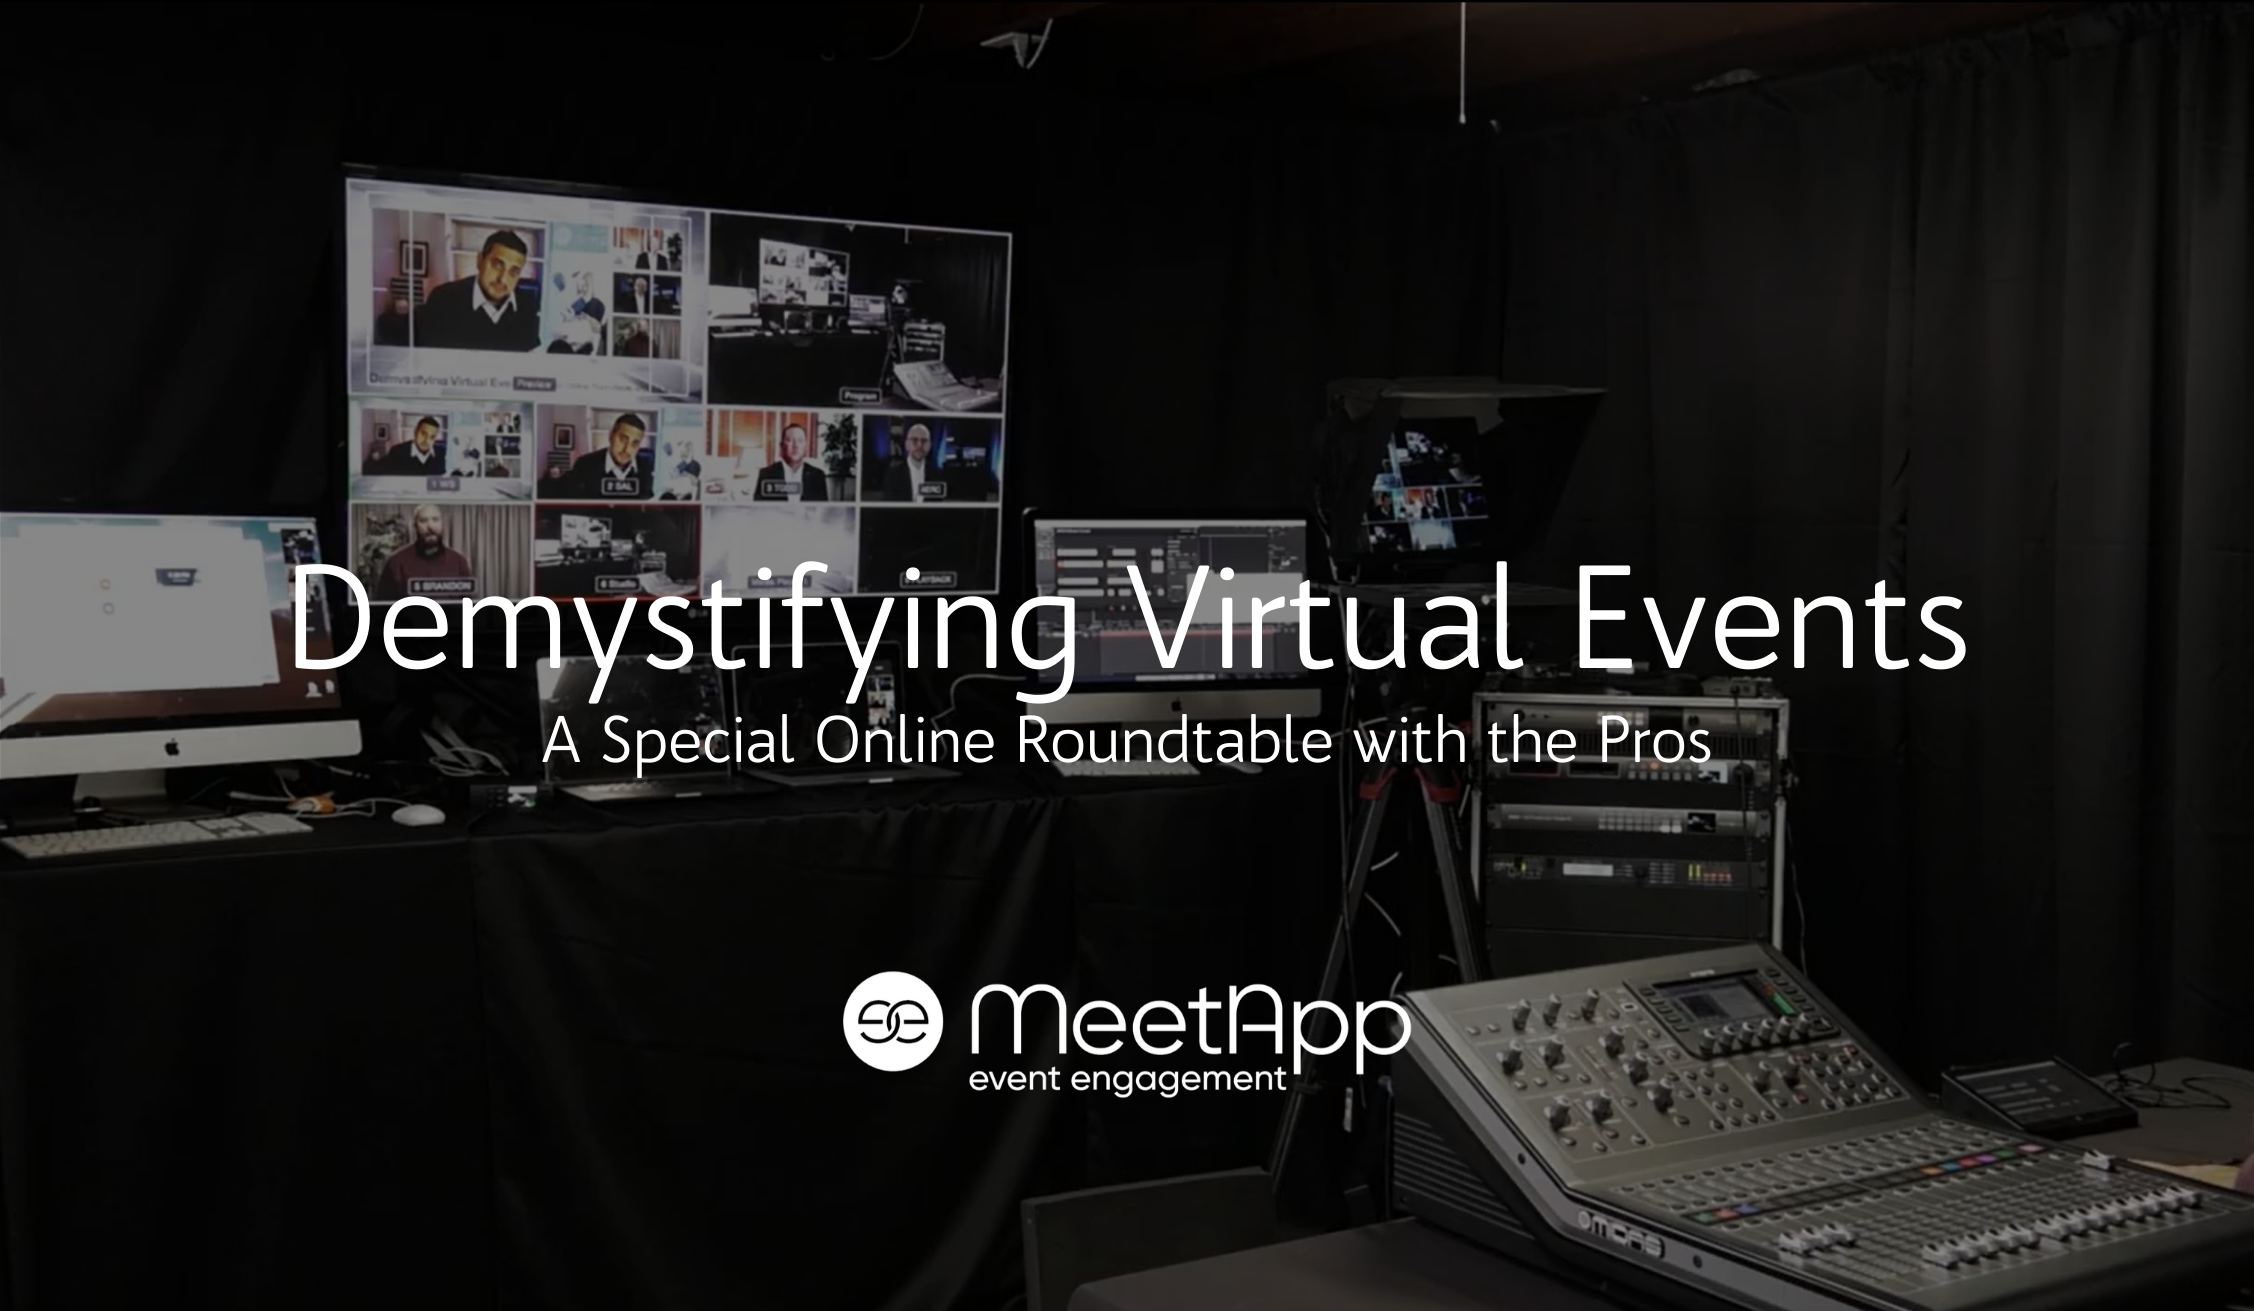 Demystifying Virtual Events